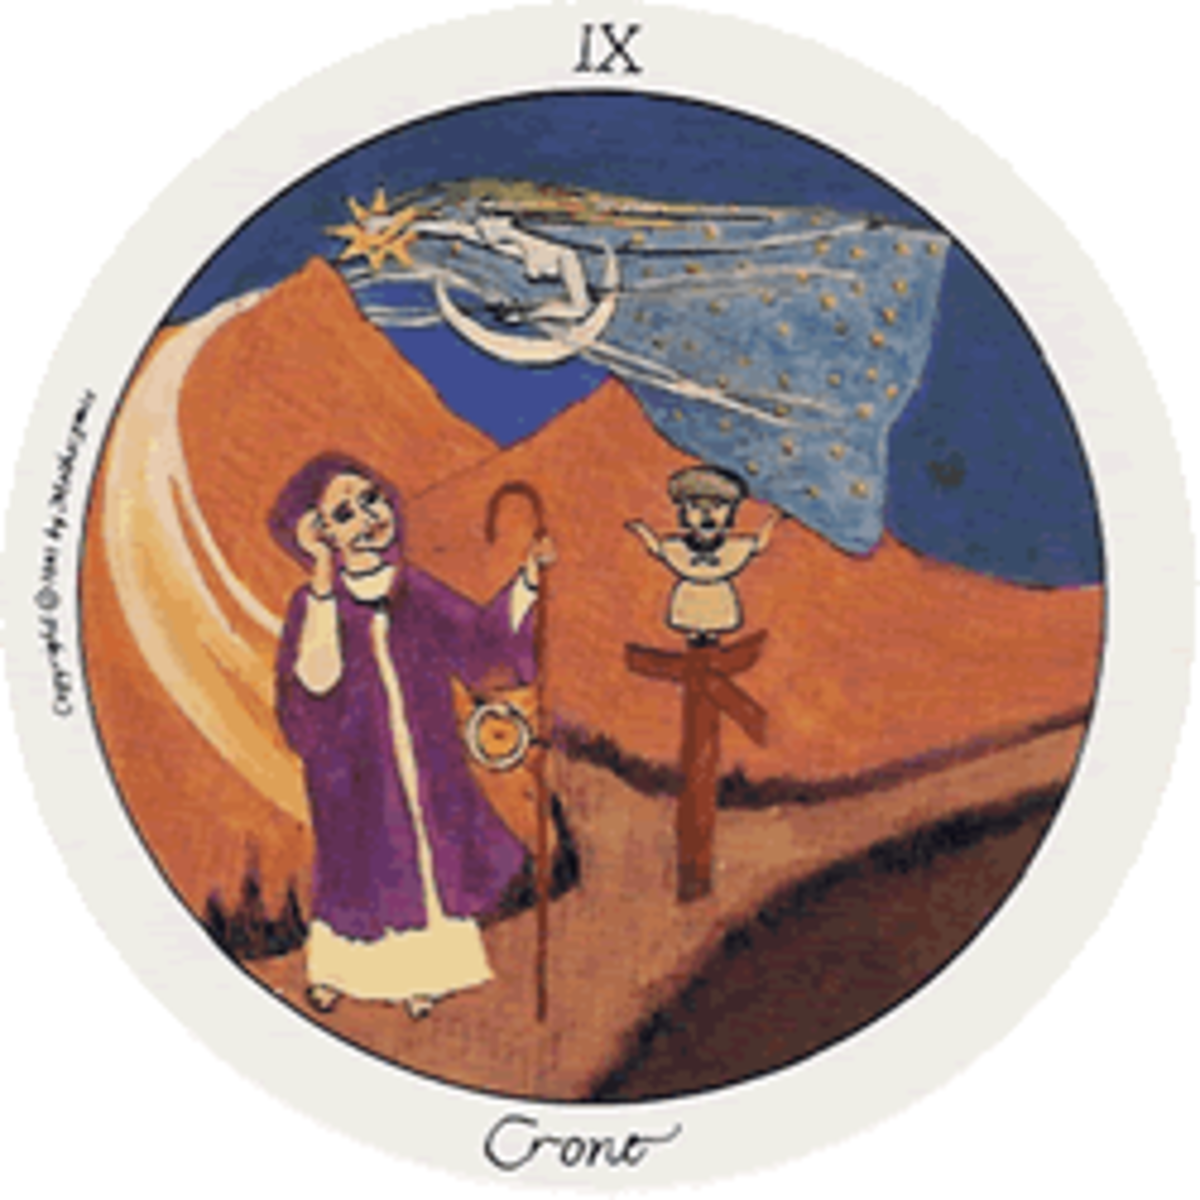 The Crone is normally called The Hermit in the majority of Tarot Card decks. The Crone is at a major crossroads in your life to help you find your way.